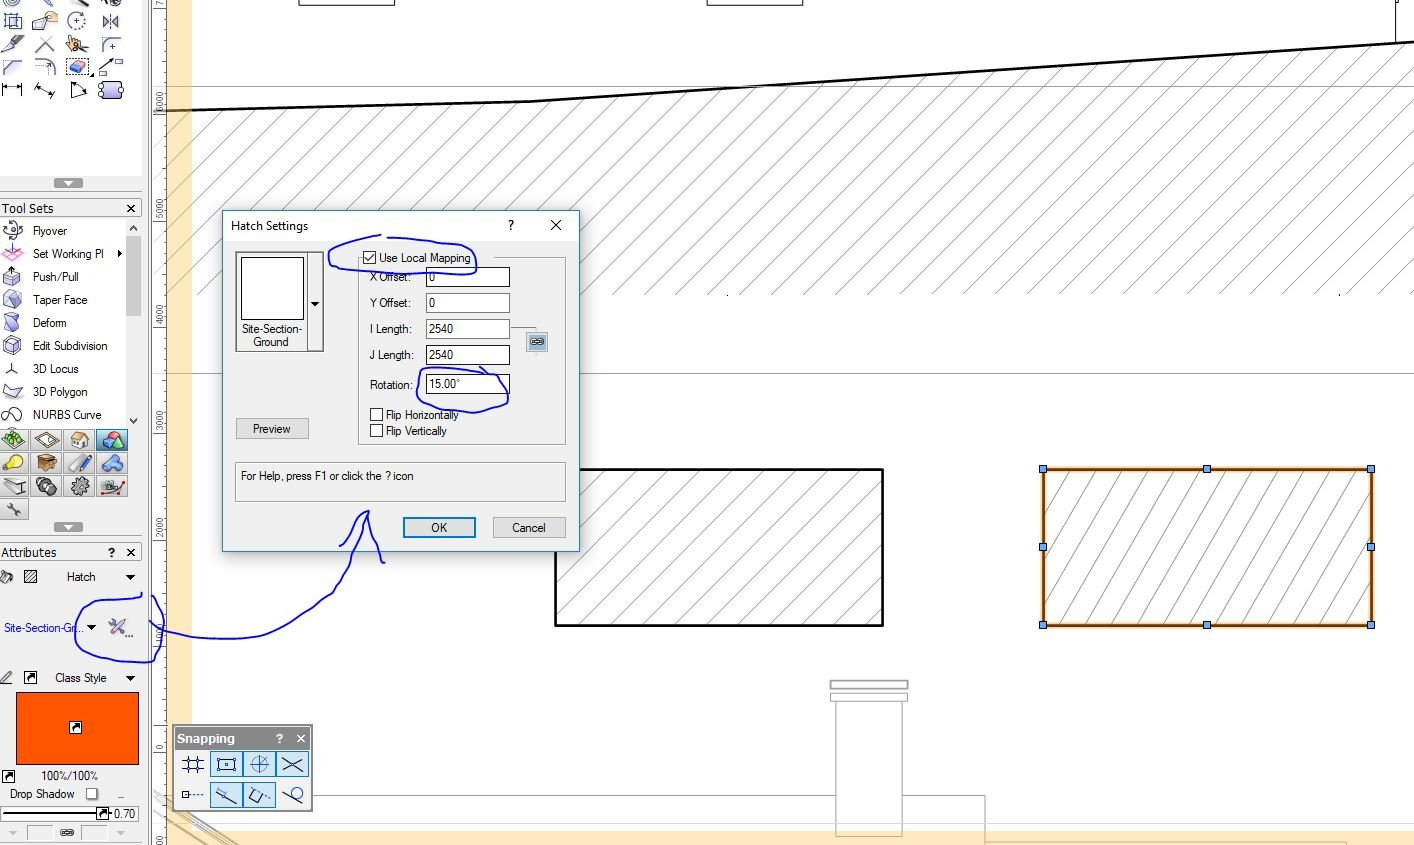 Shadow Diagram In Vectorworks Diy Enthusiasts Wiring Diagrams 1986 Honda Rotate Hatch General Discussion Community Board Rh Forum Net Vt1100 And Electrical System 750